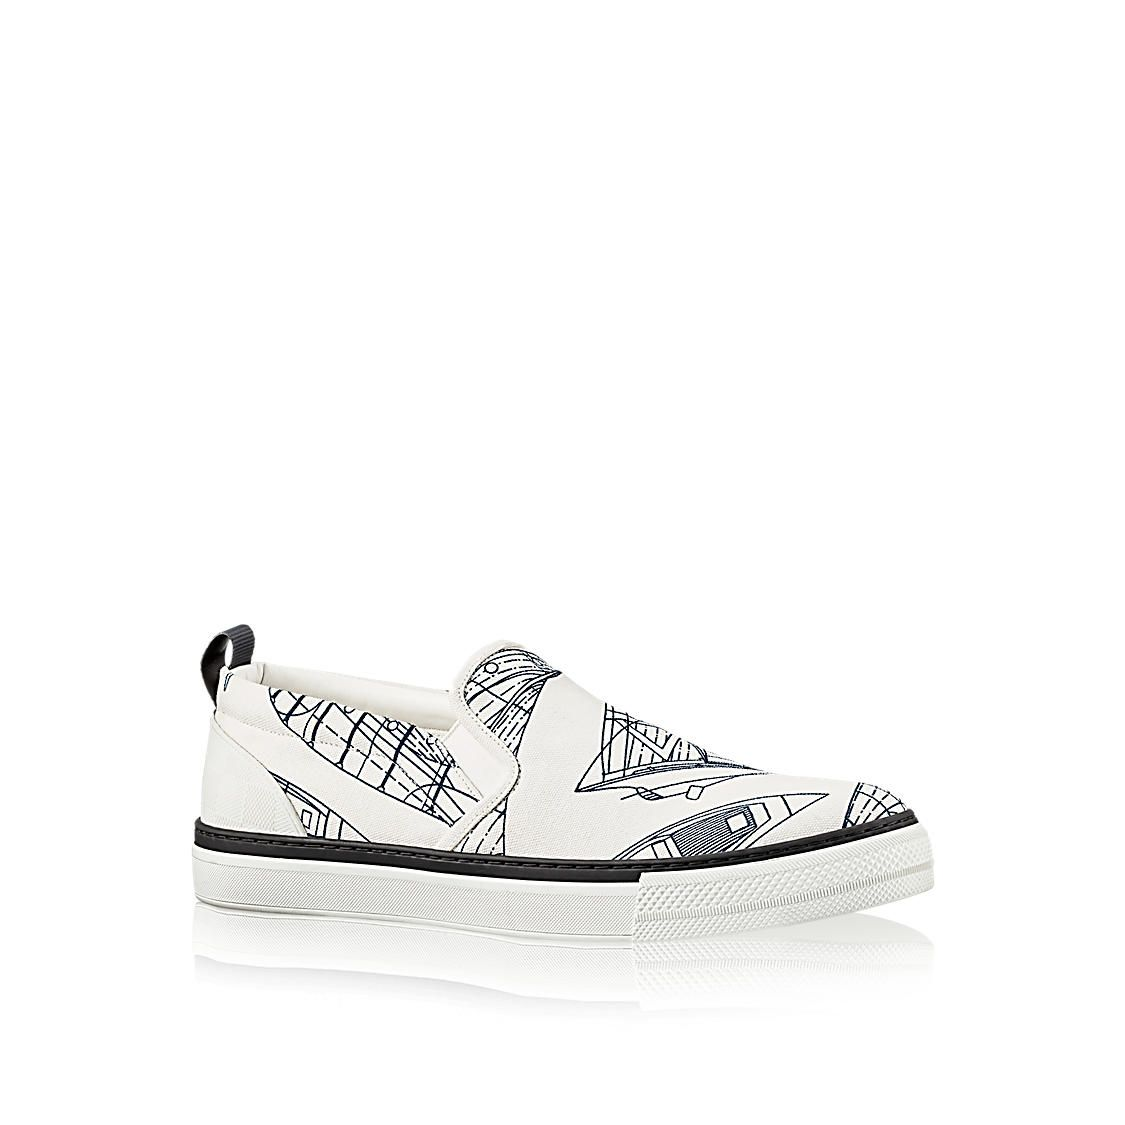 Victory Boat Slip-On + - America's Cup Collection   LOUIS VUITTON